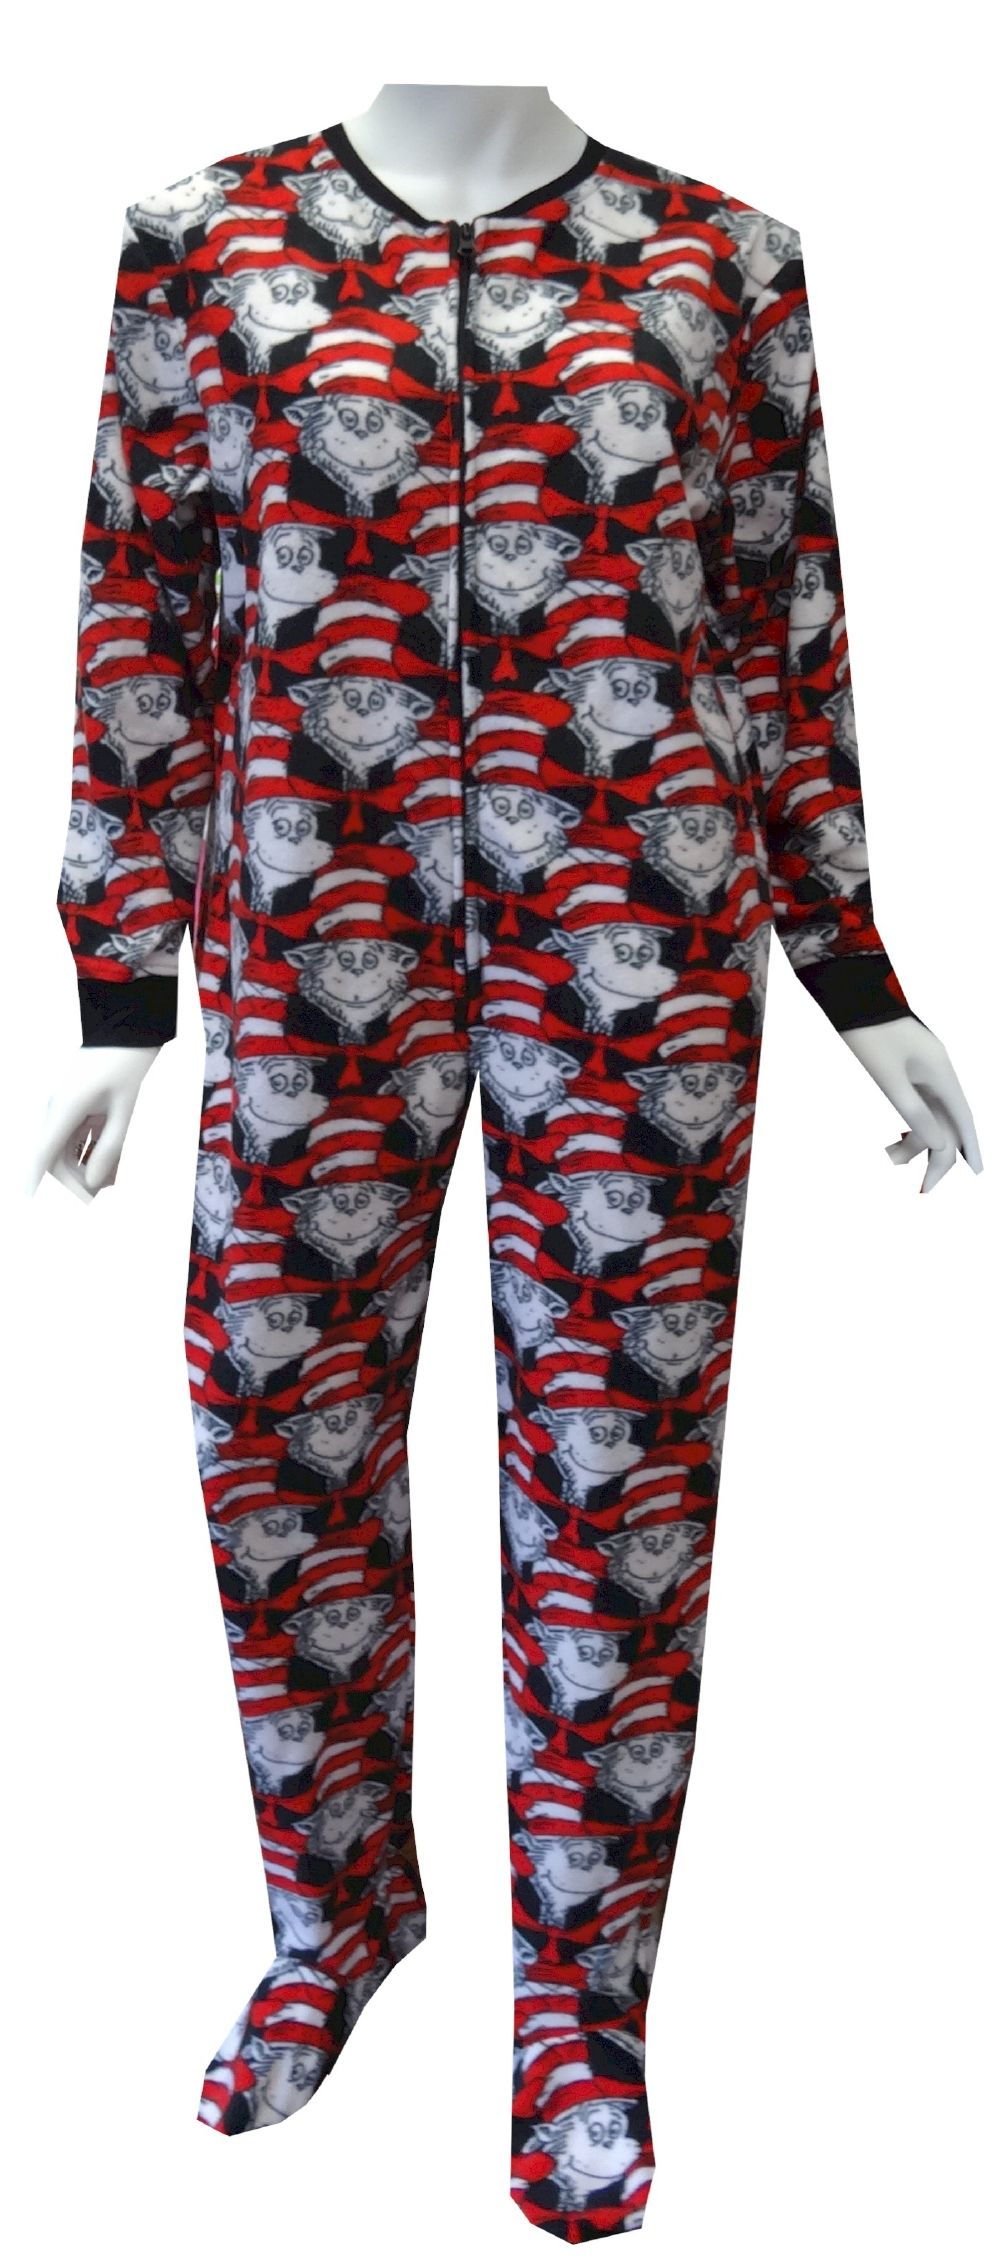 56fb1a06111e Dr Seuss Cat in the Hat Gripper Bottom Onesie Footie Pajama These ...